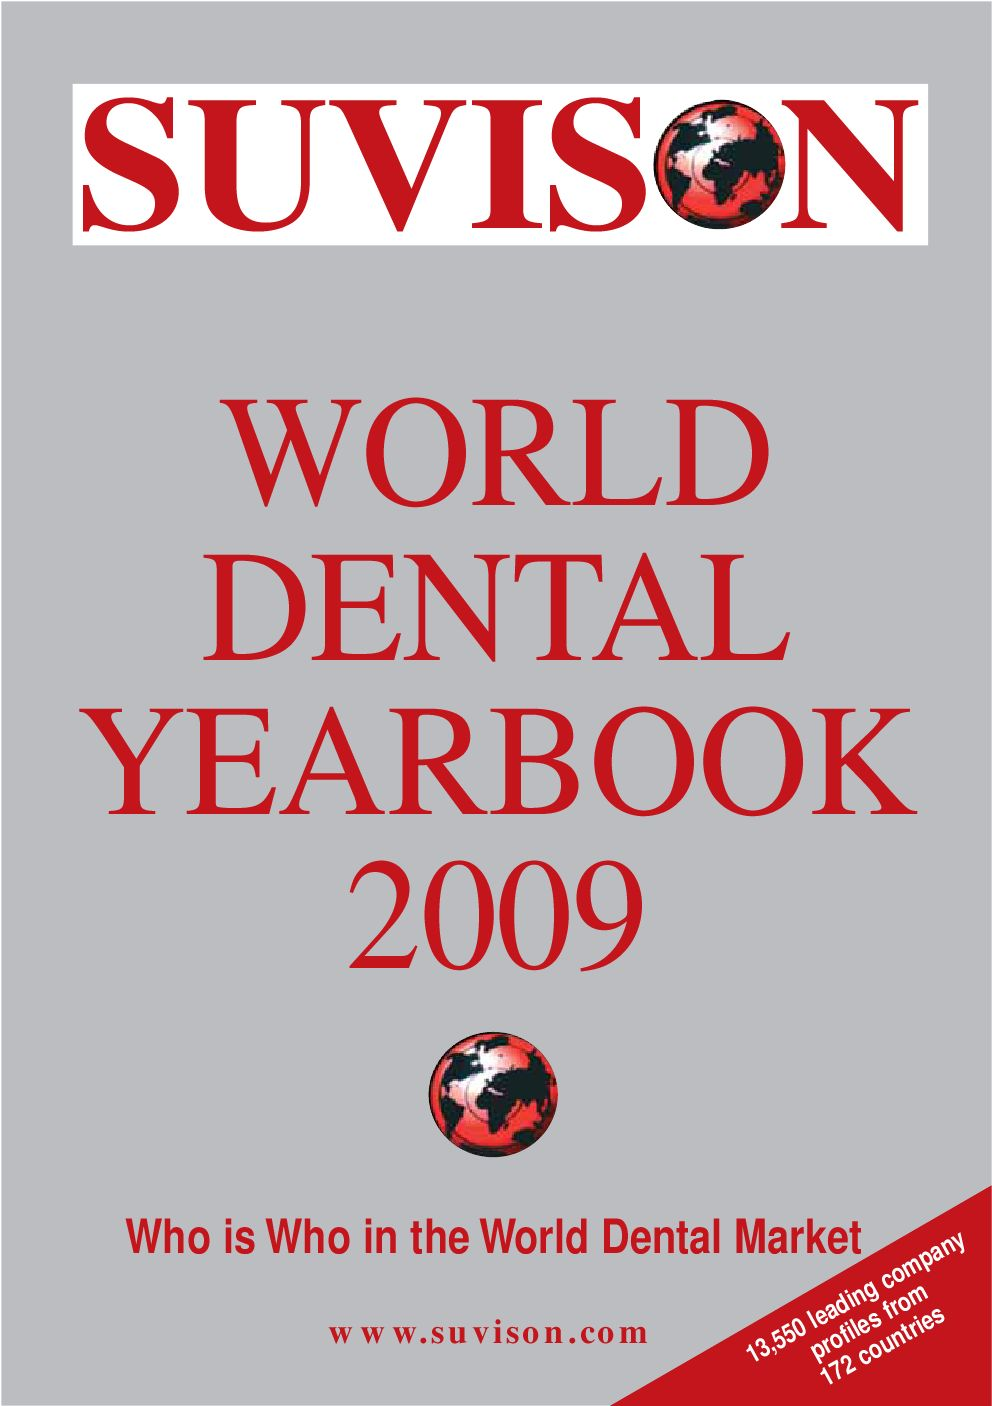 eece4efa97730 World Dental Yearbook by Suvison Business Services - issuu